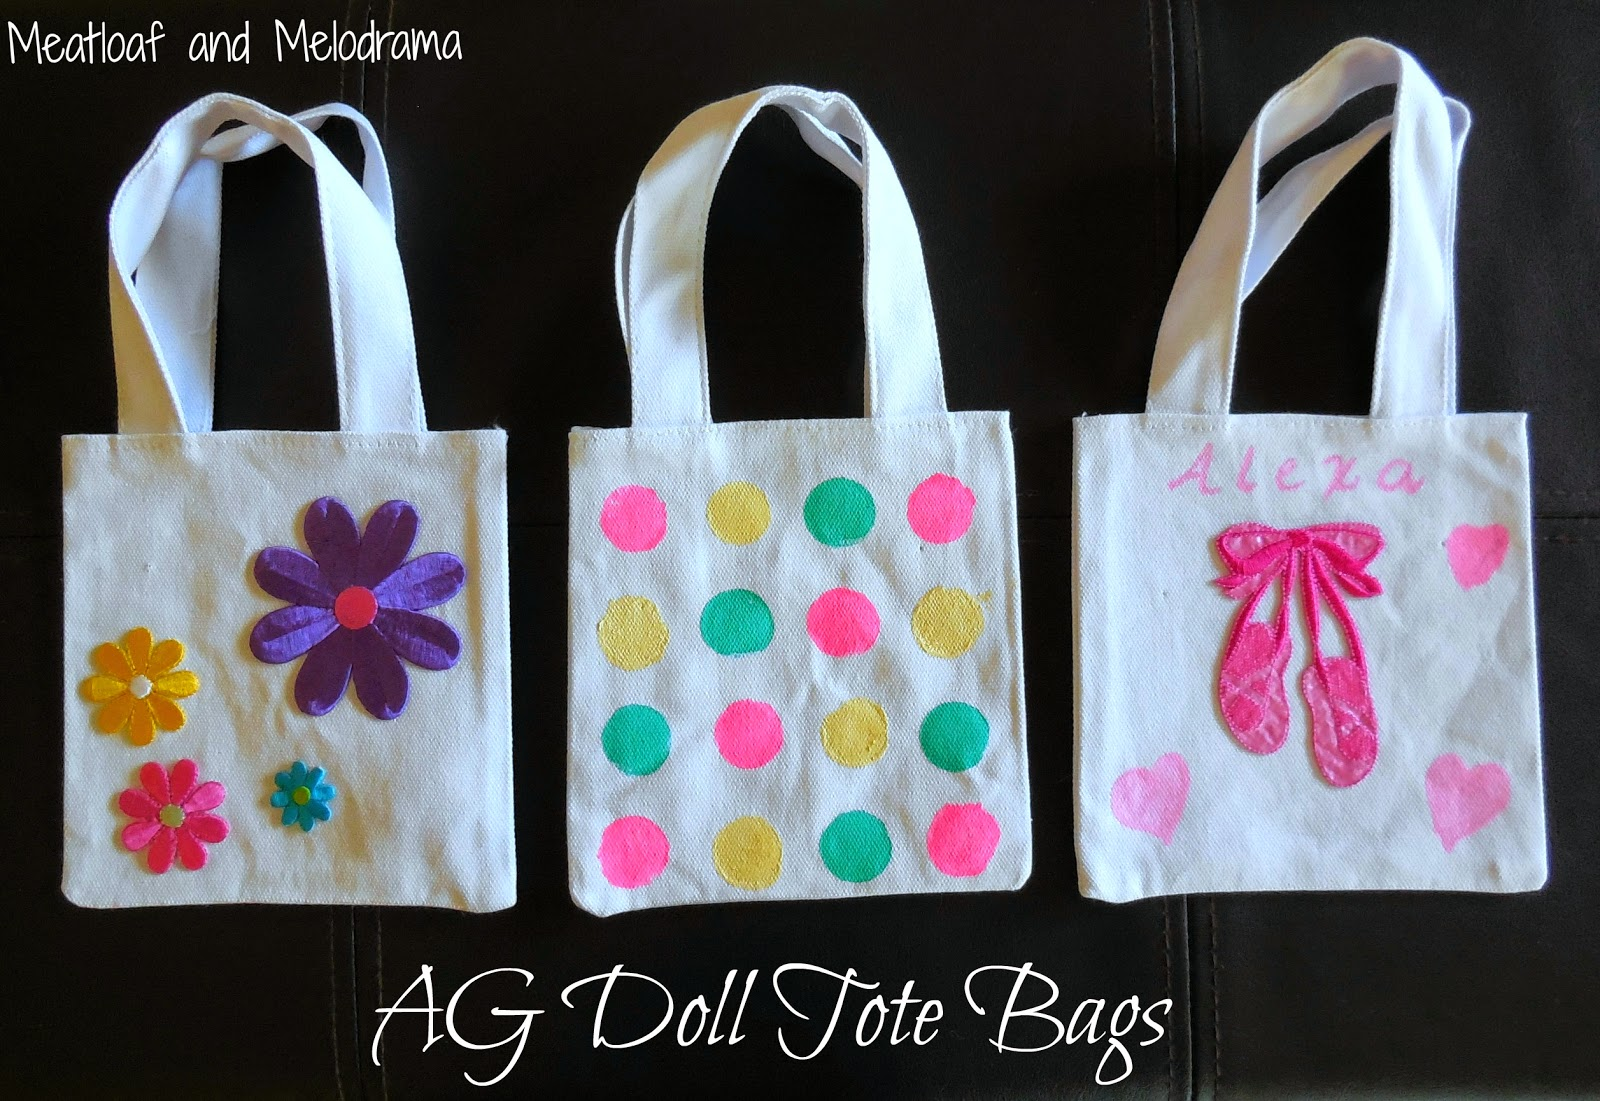 American girl doll tote bags meatloaf and melodrama Ideas for hanging backpacks